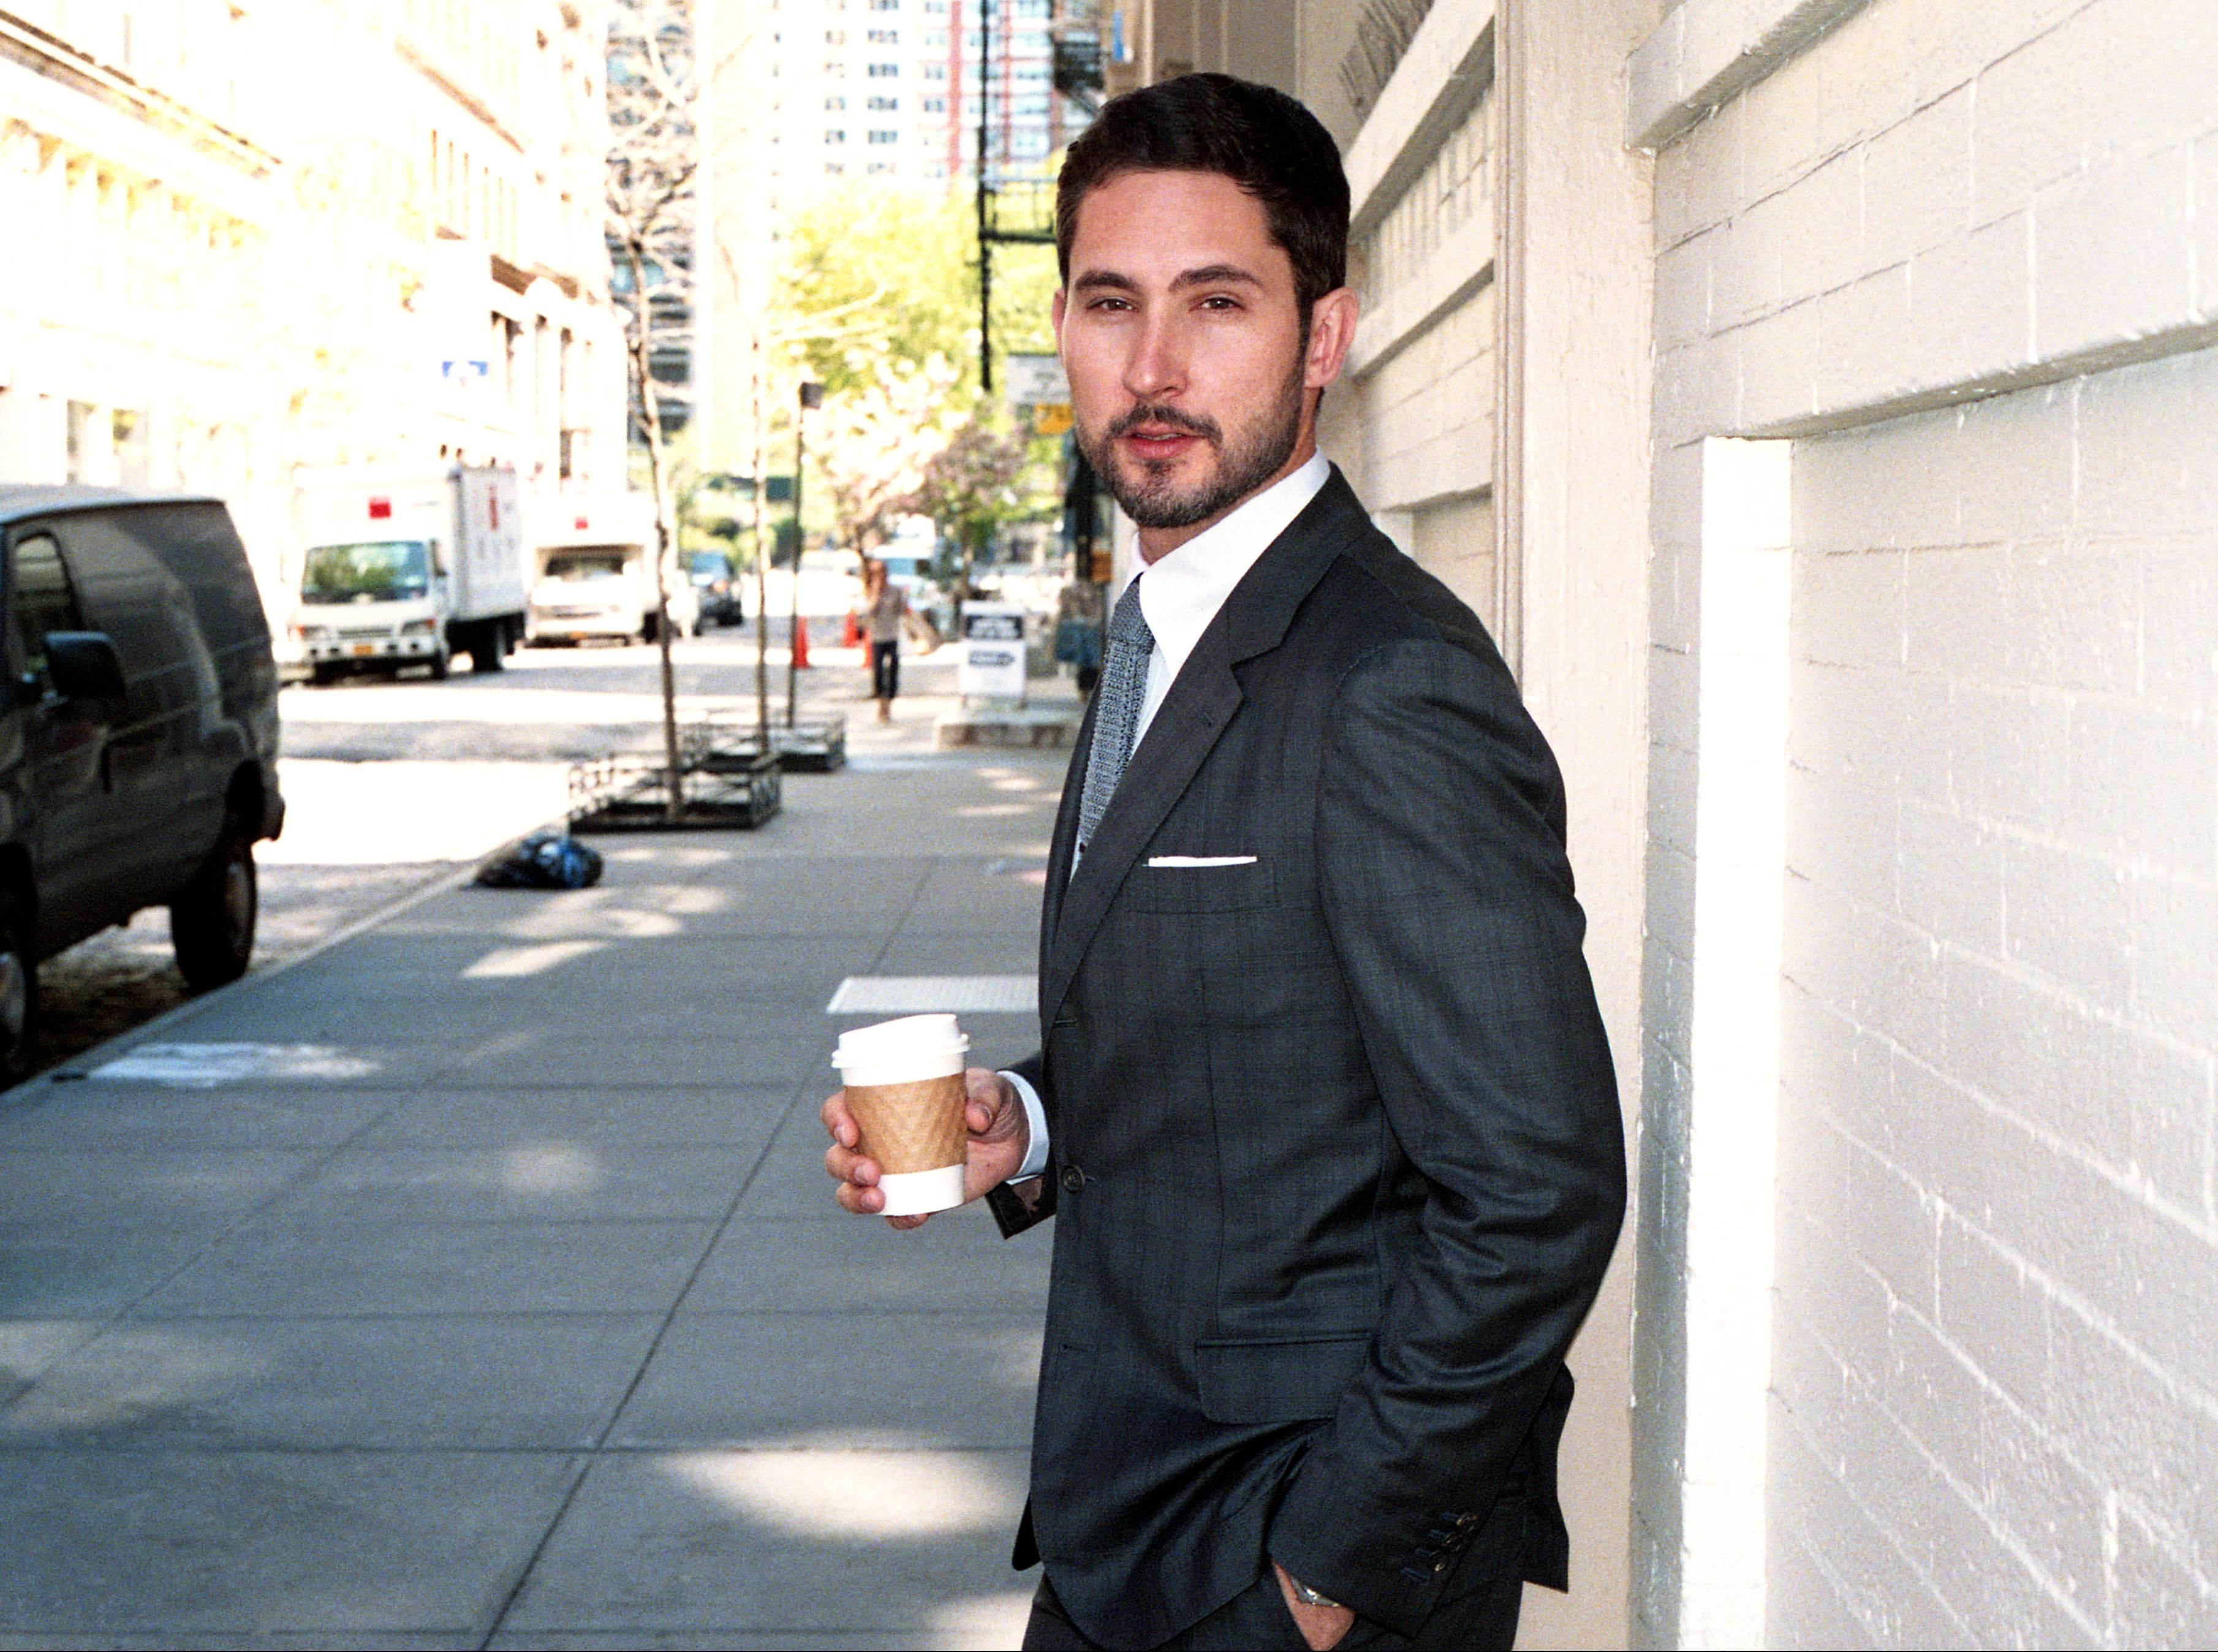 instagram's kevin systrom on fashion and #freethenipple - i-D